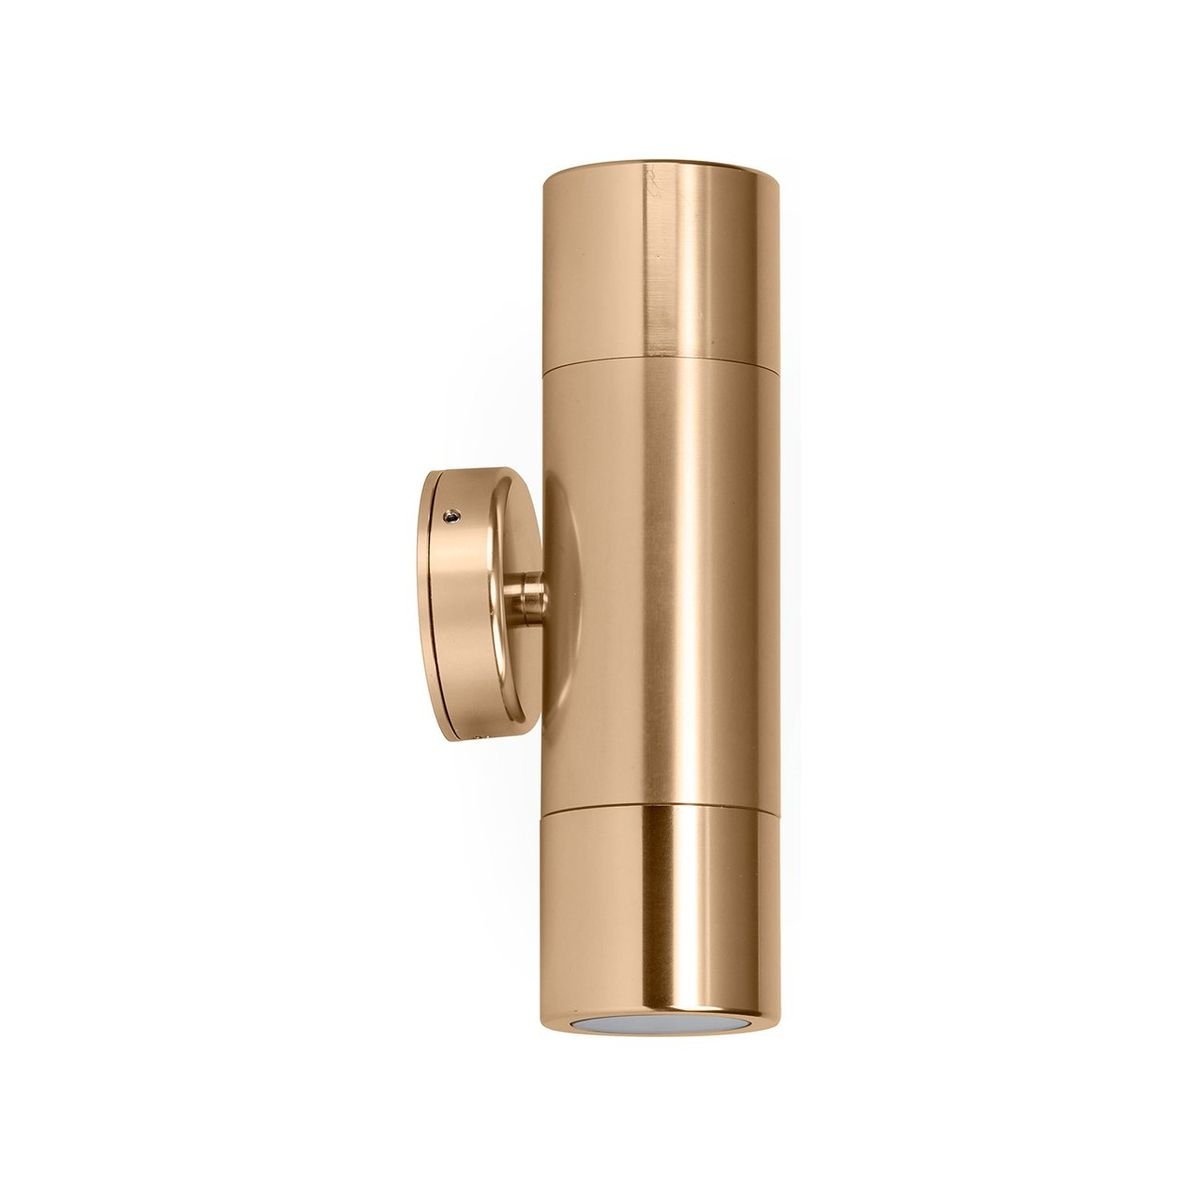 HV1056 - Tivah Gold Up & Down Wall Pillar Light